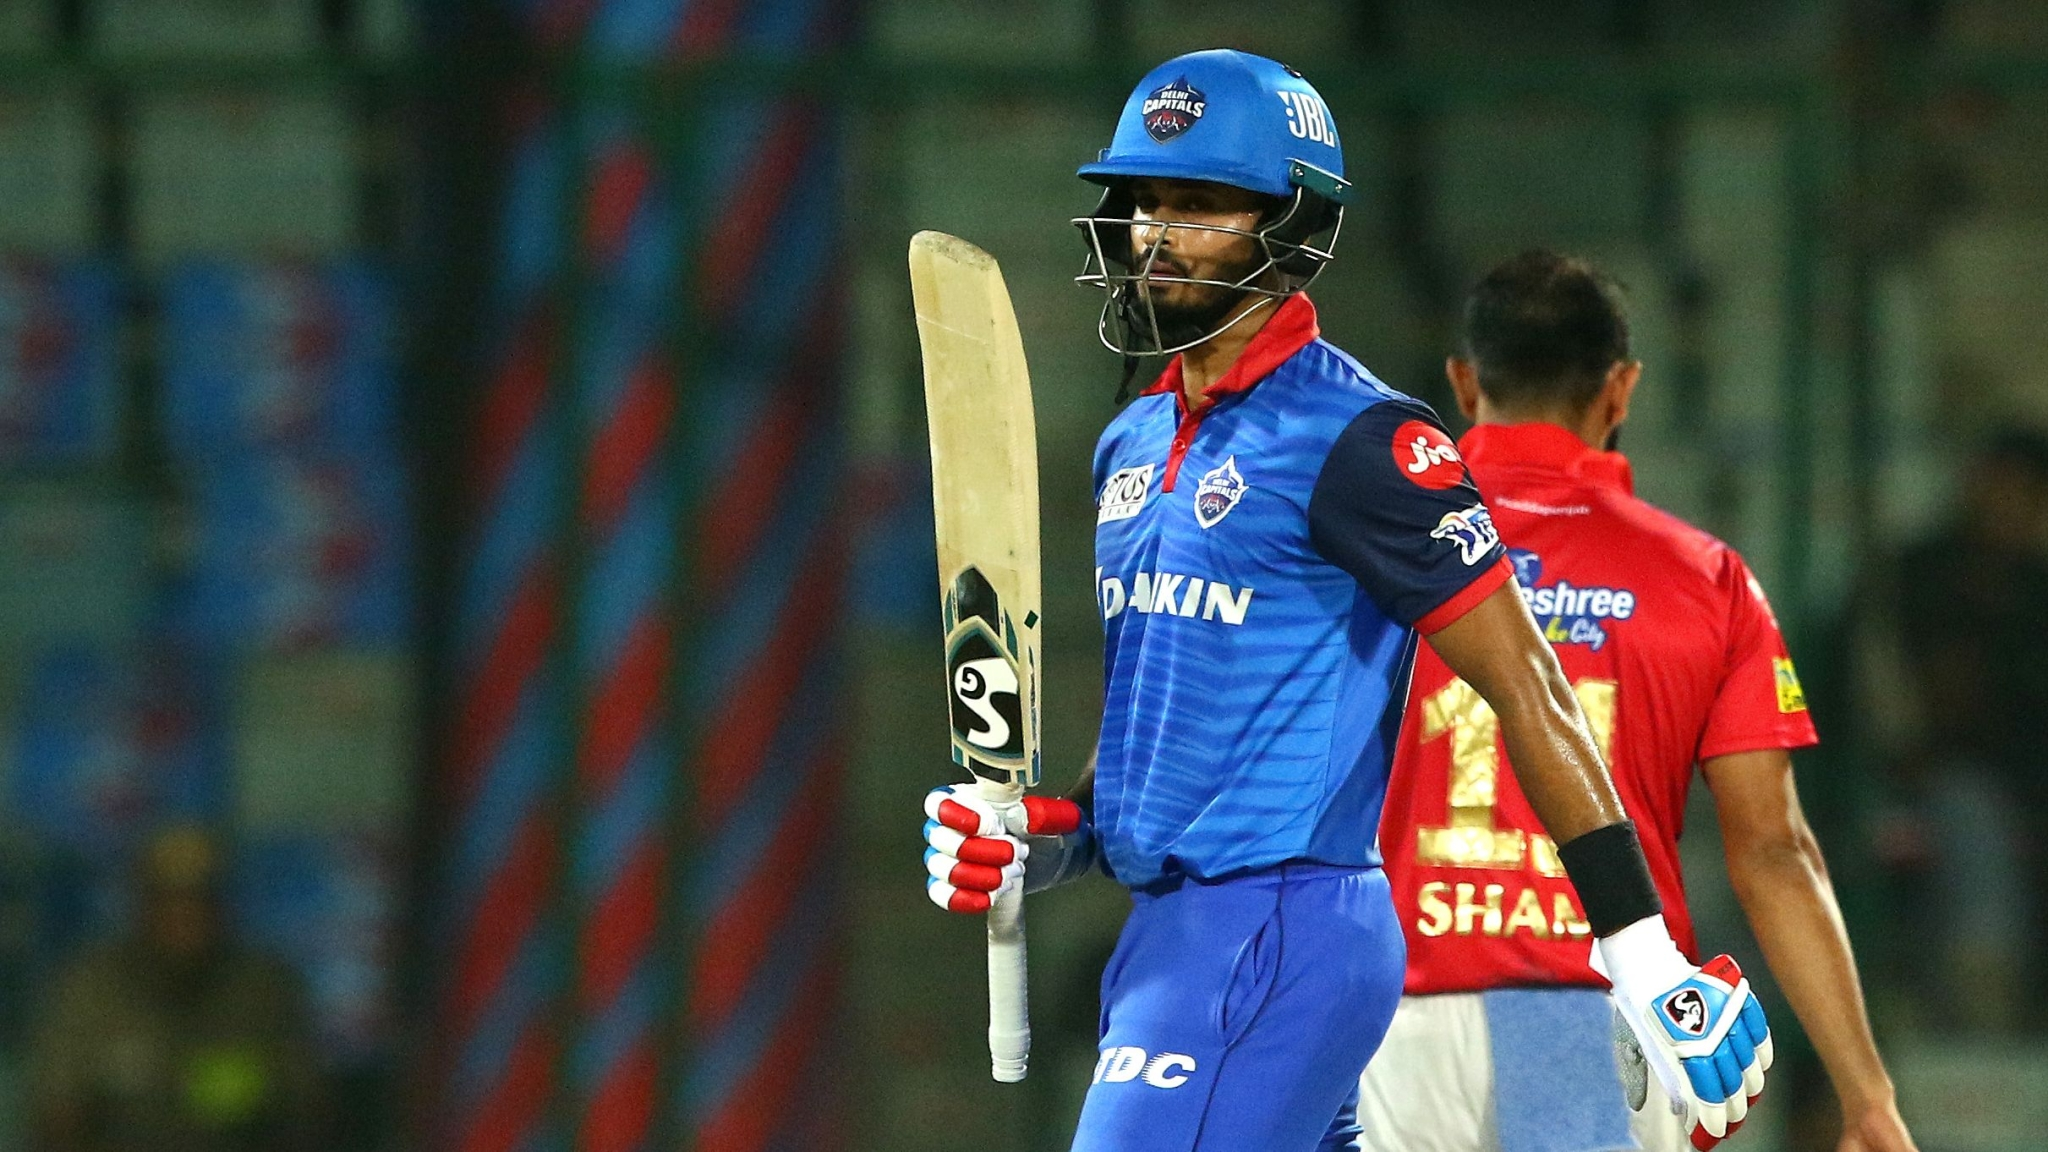 Captain Iyer Guides Delhi to Win Over KXIP in Last-Over Thriller